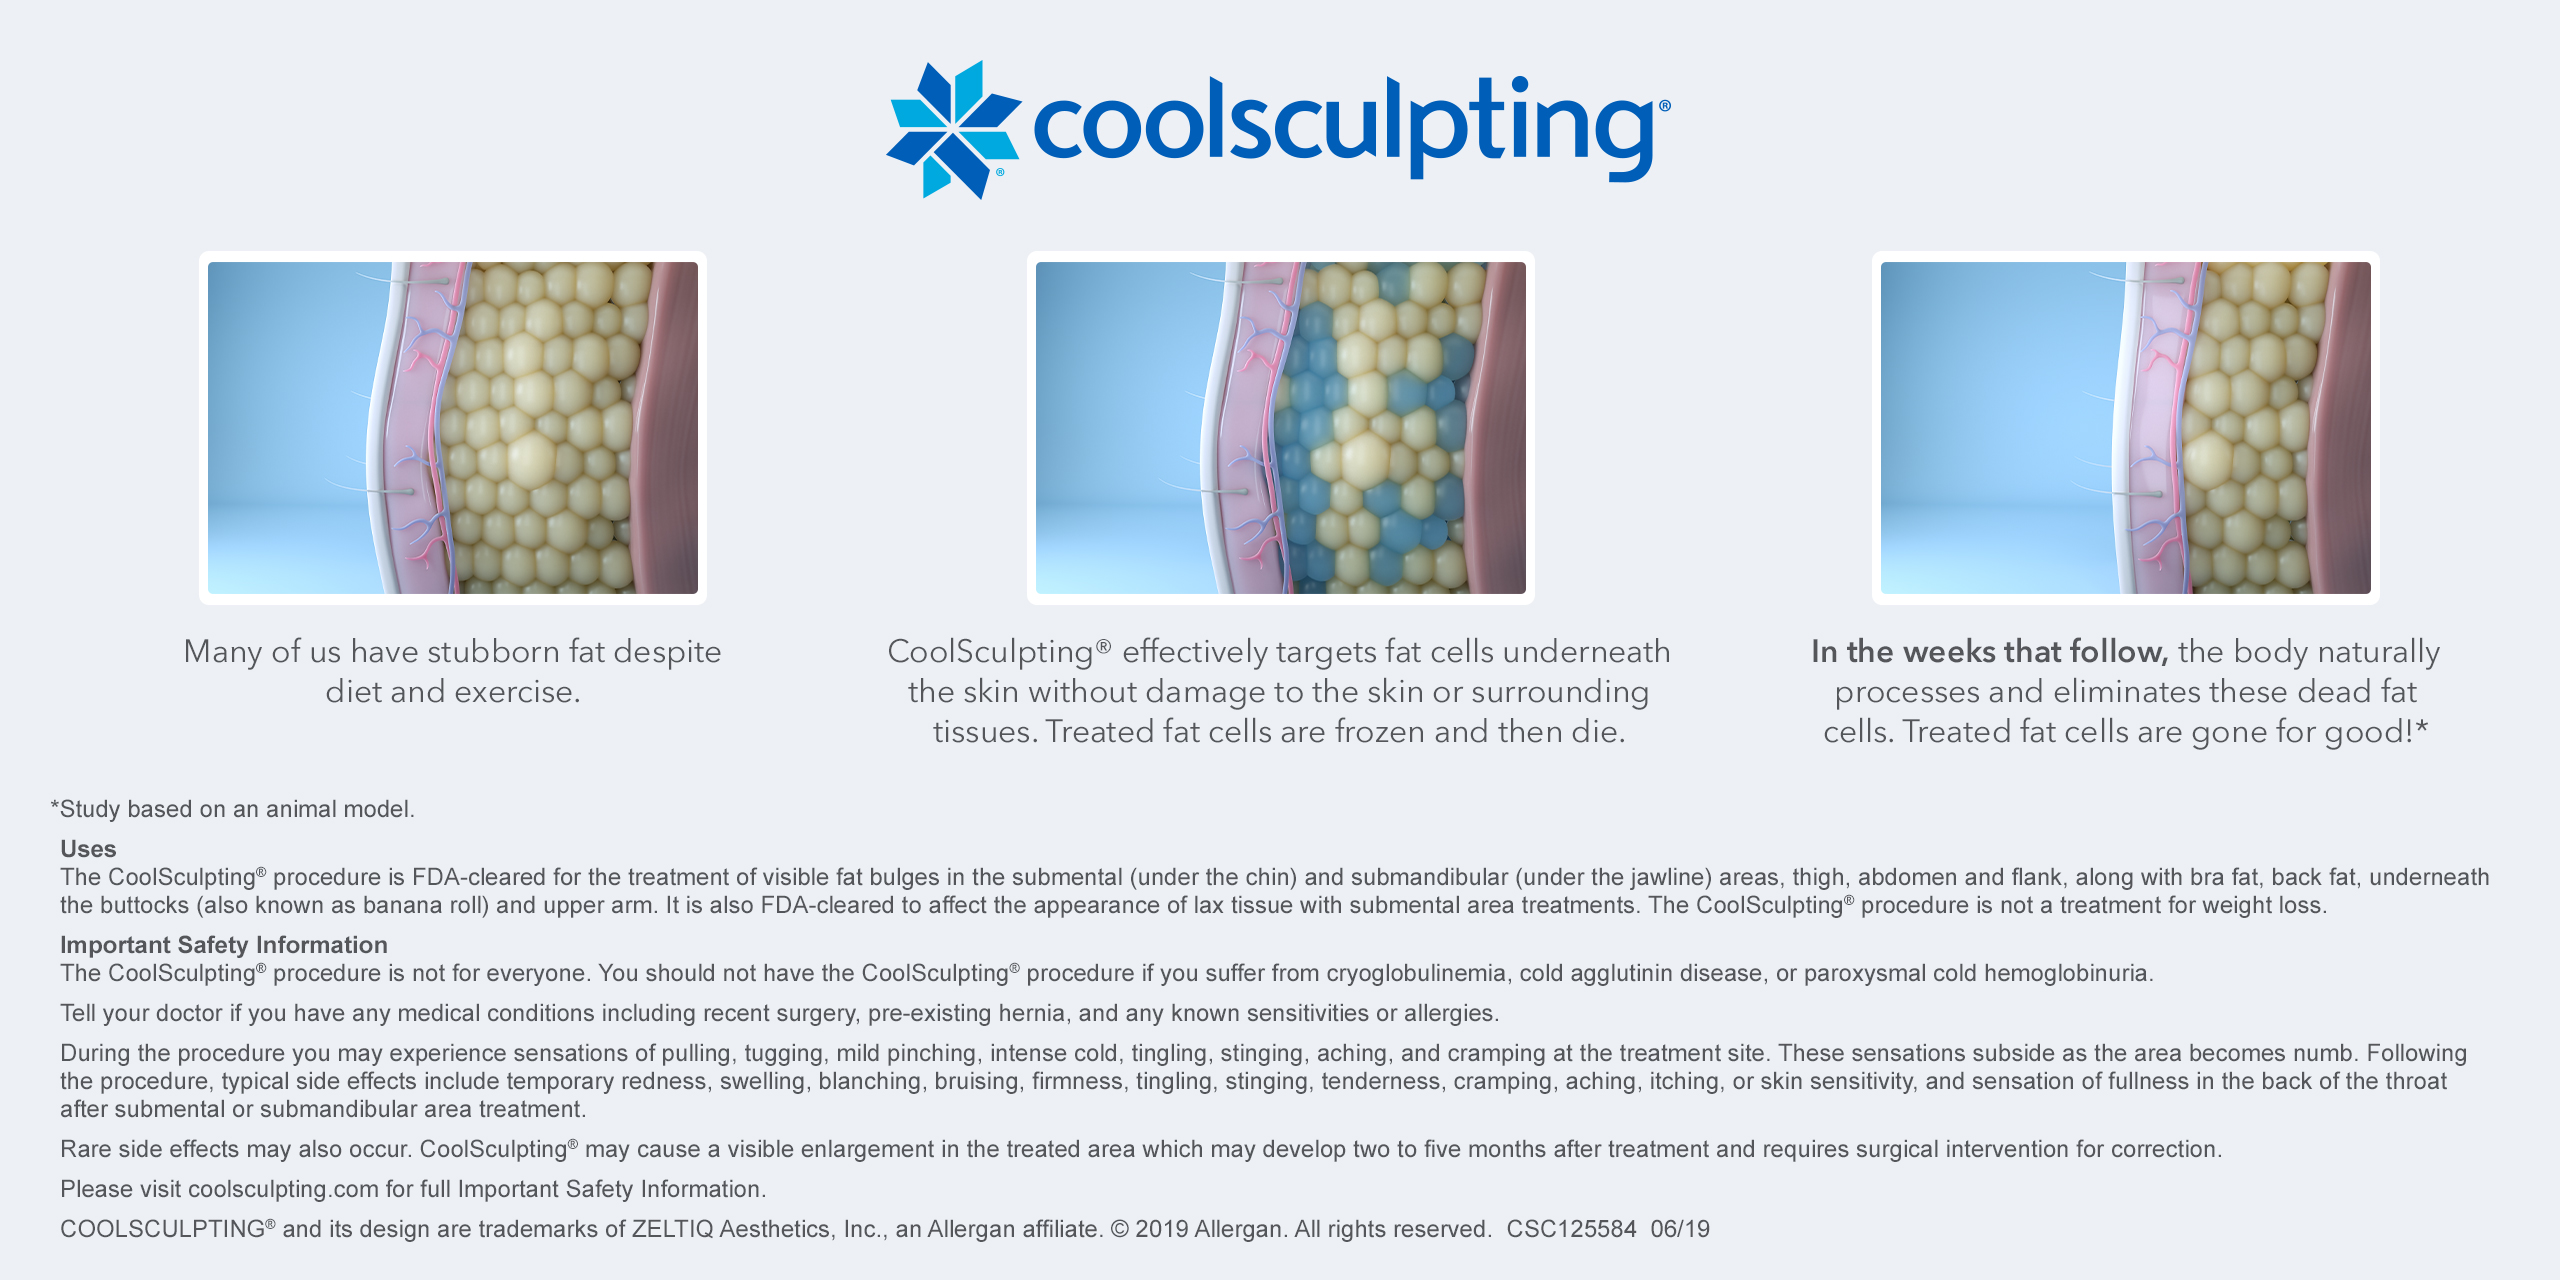 cool sculpting illustration